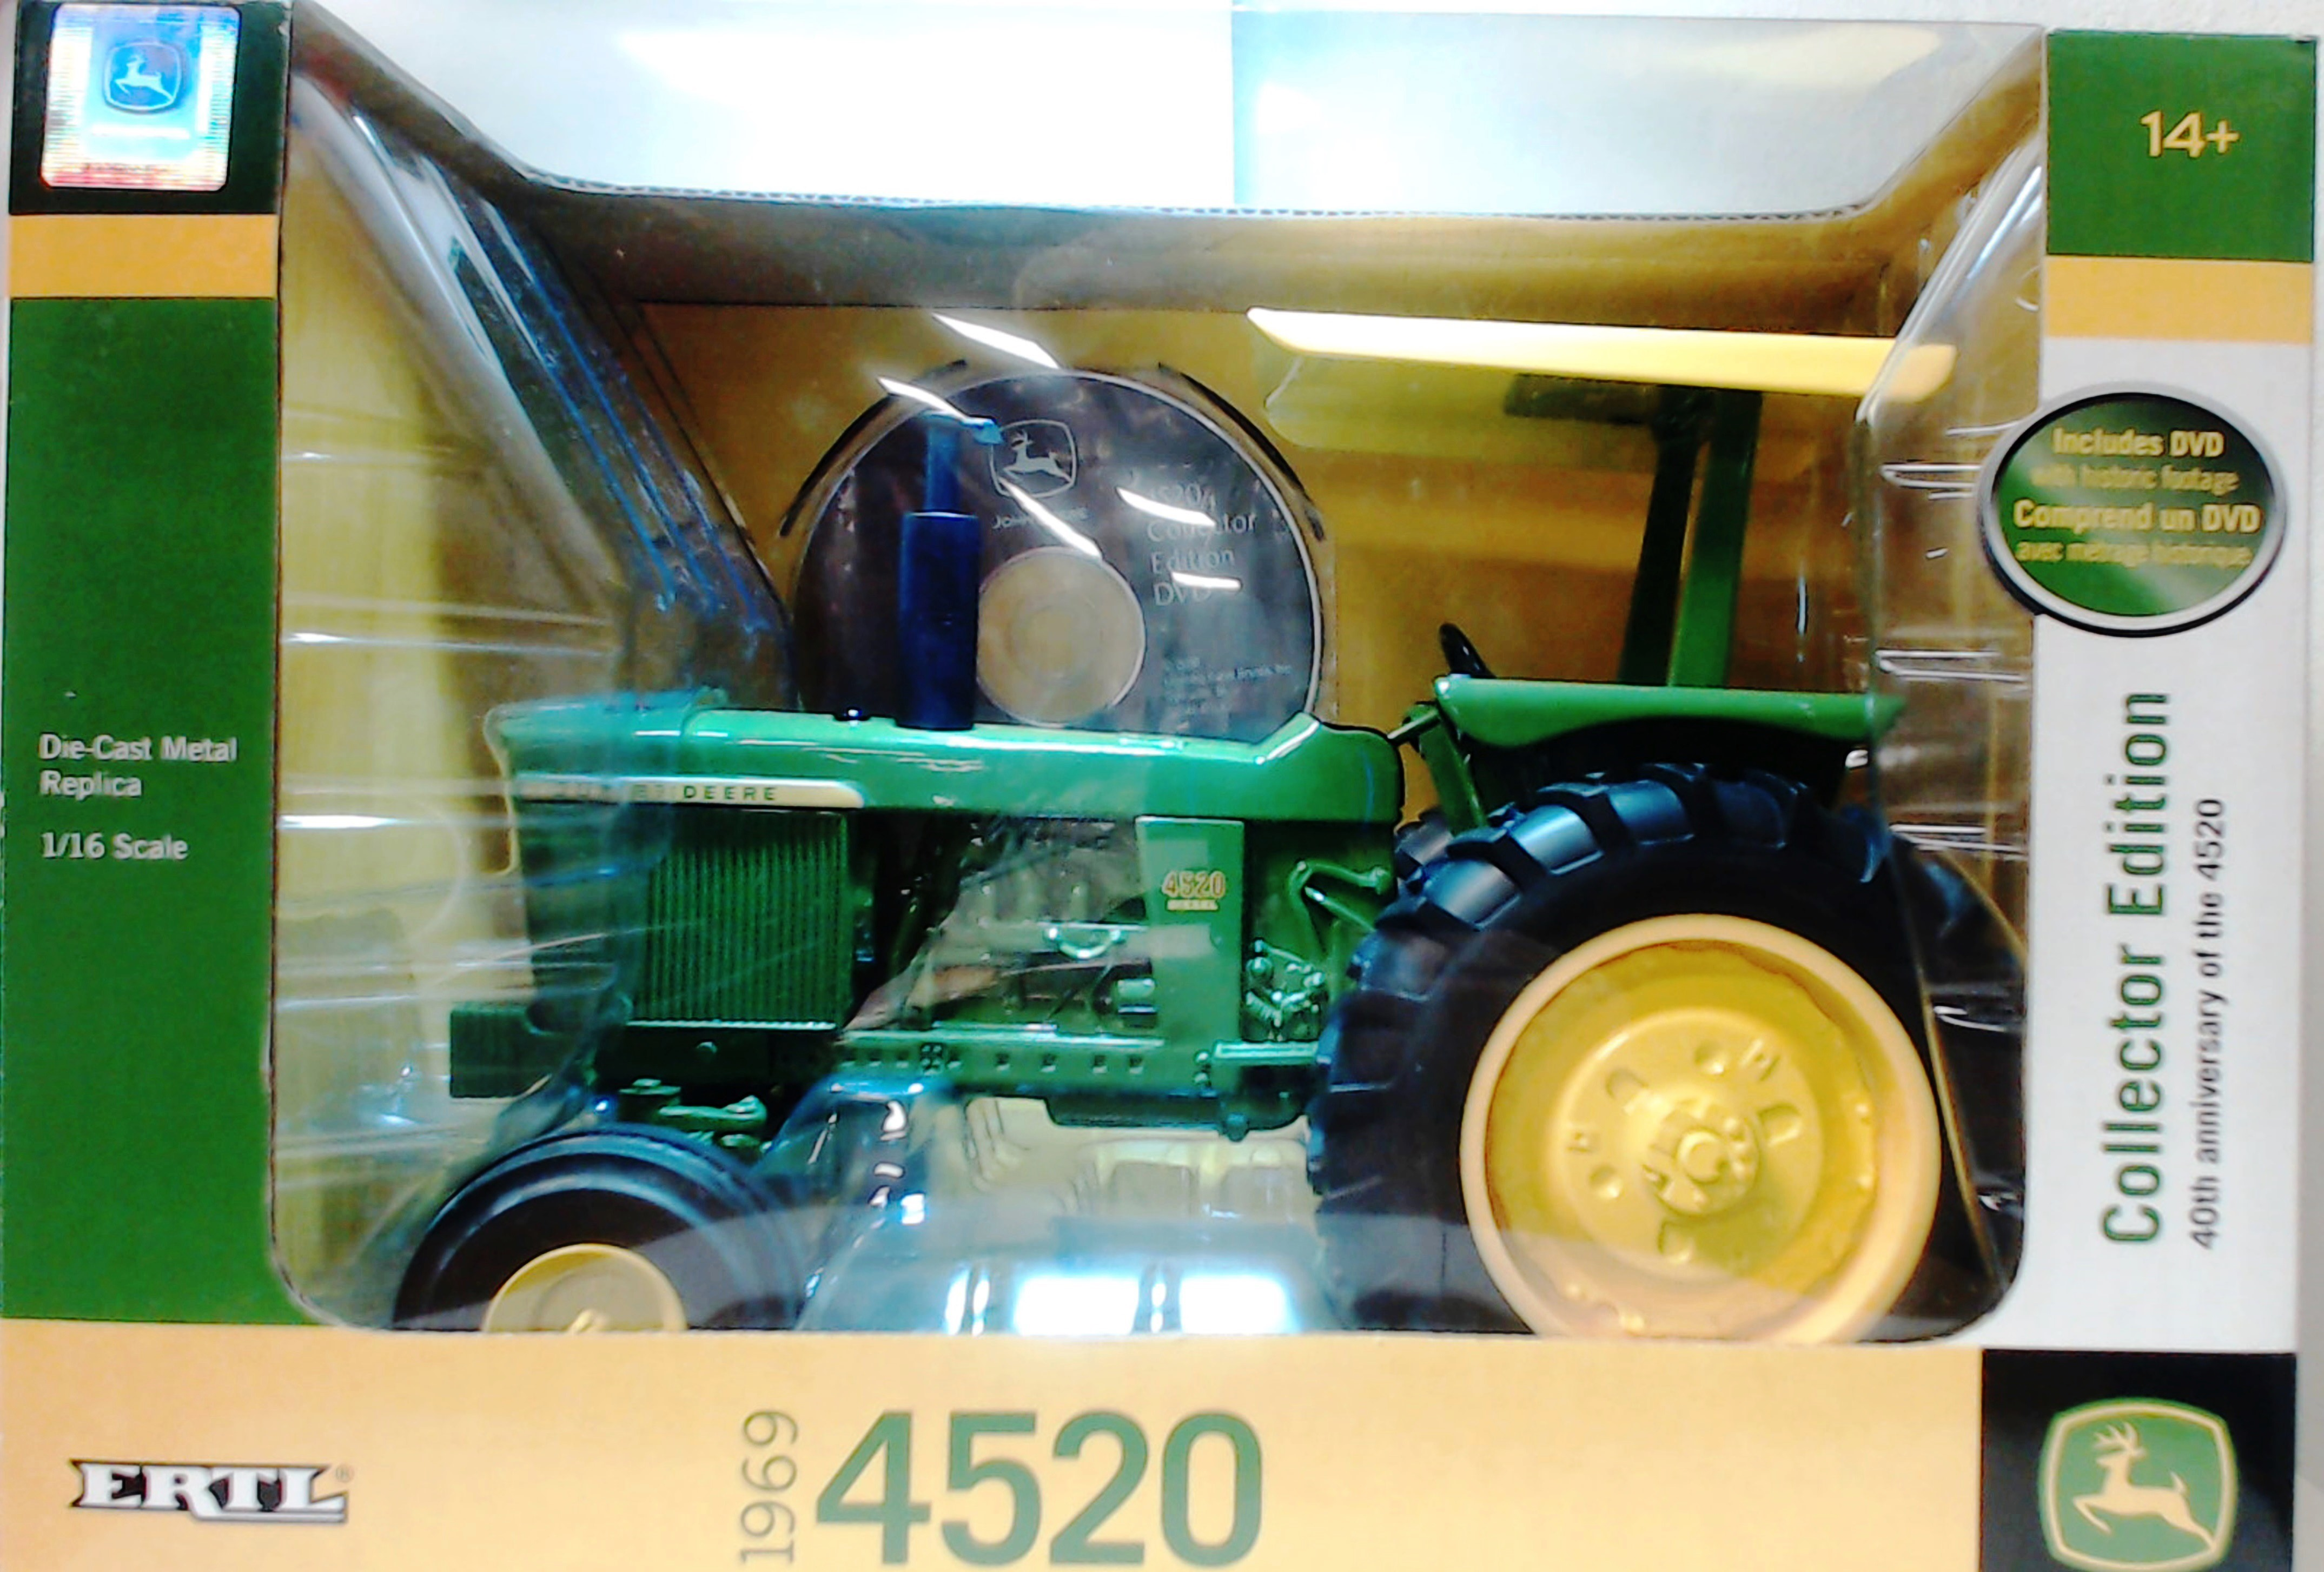 E246b134 648e 4708 8c70 08d75b62e35b further ImportHubViewItem also AuctionsSPRING2015 also Sealed Case Of 4 1 16th 7 Toy Tractor Times Massey Ferguson 1150 With Rops Incl 1 Chase Unit furthermore 7c031642 Efbd 4378 B0ed A25a6bbea084. on oliver tractor canopy